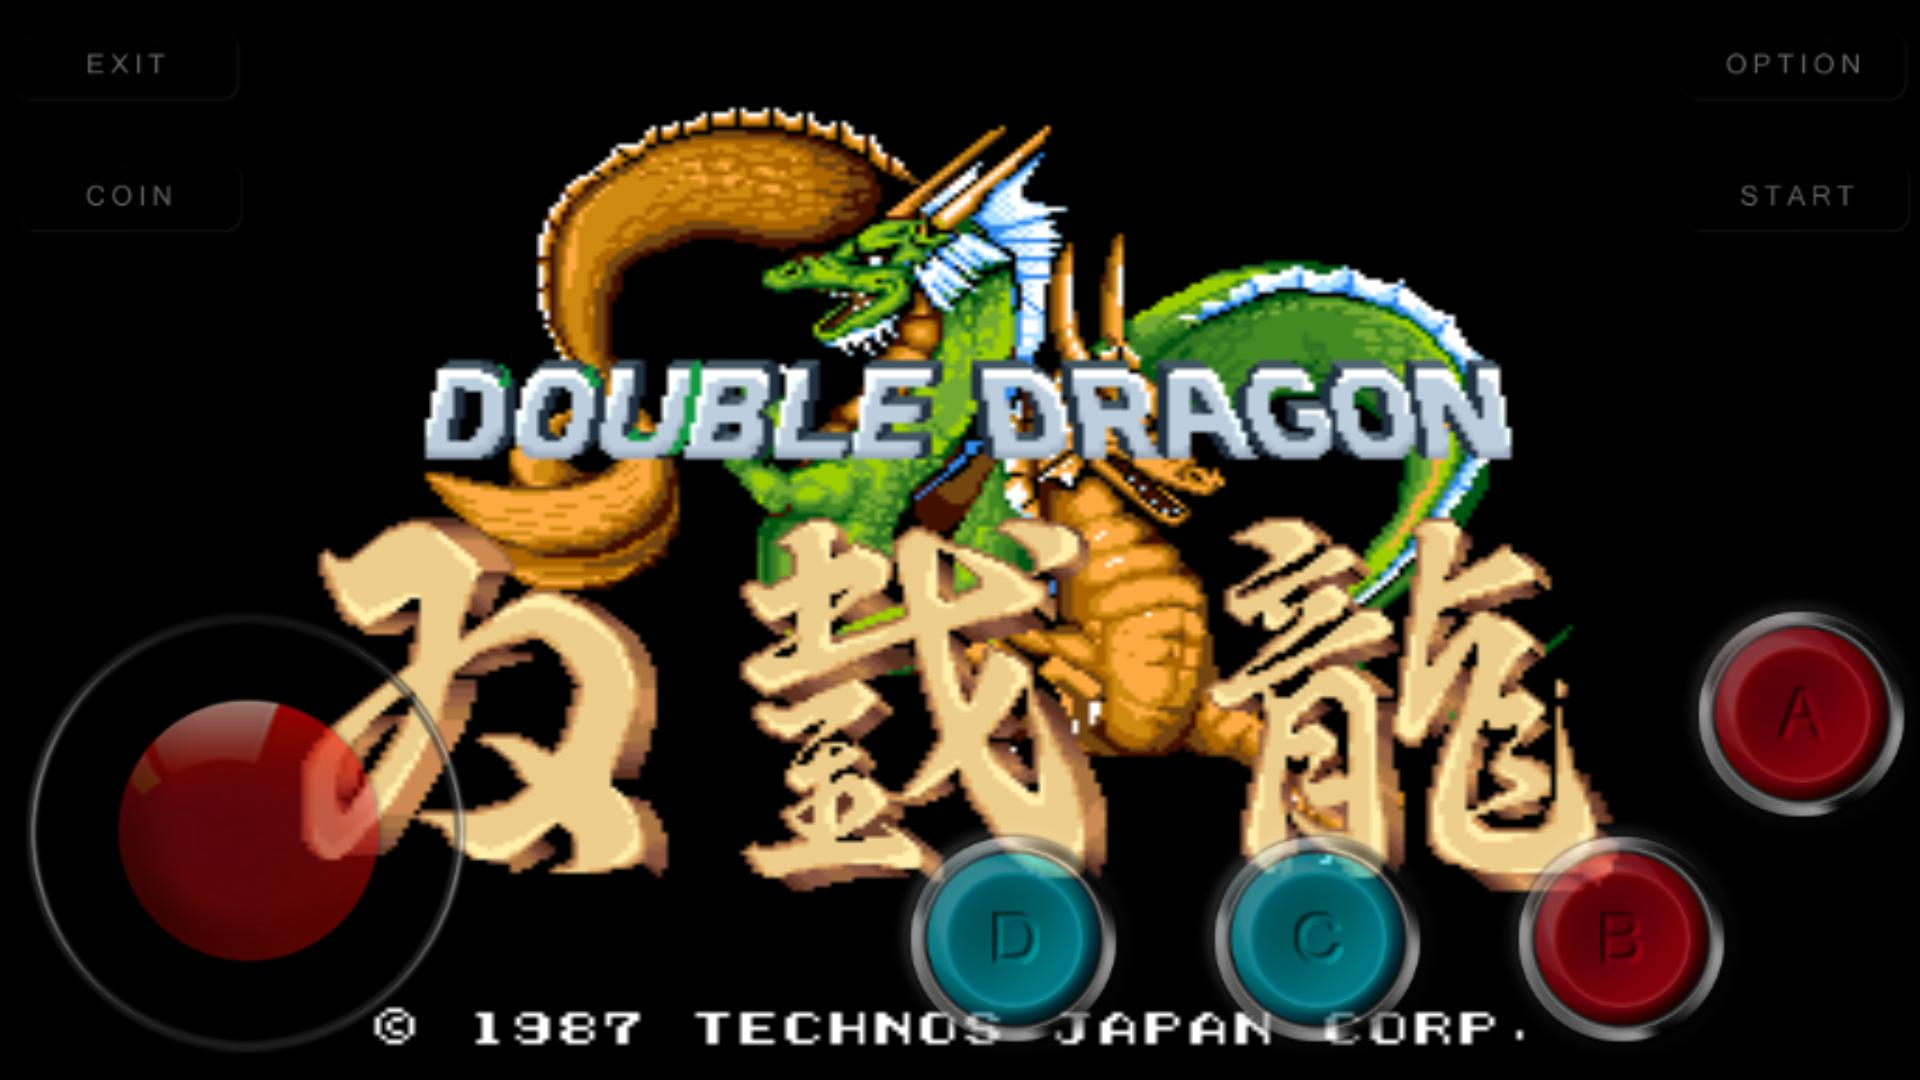 Code Double Dragon Arcade For Android Apk Download